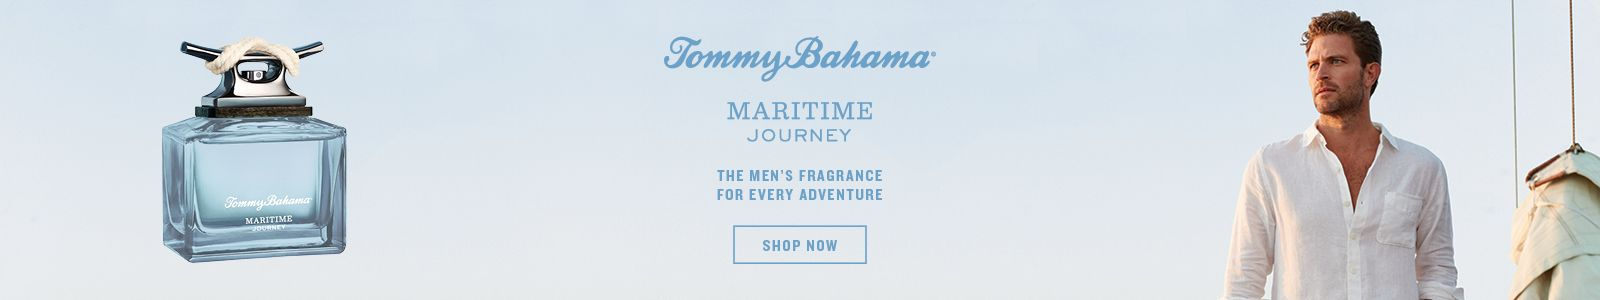 Tommy Bahama, Maritime, Journey, The Men's Fragrance for Every Adventure, Shop Now